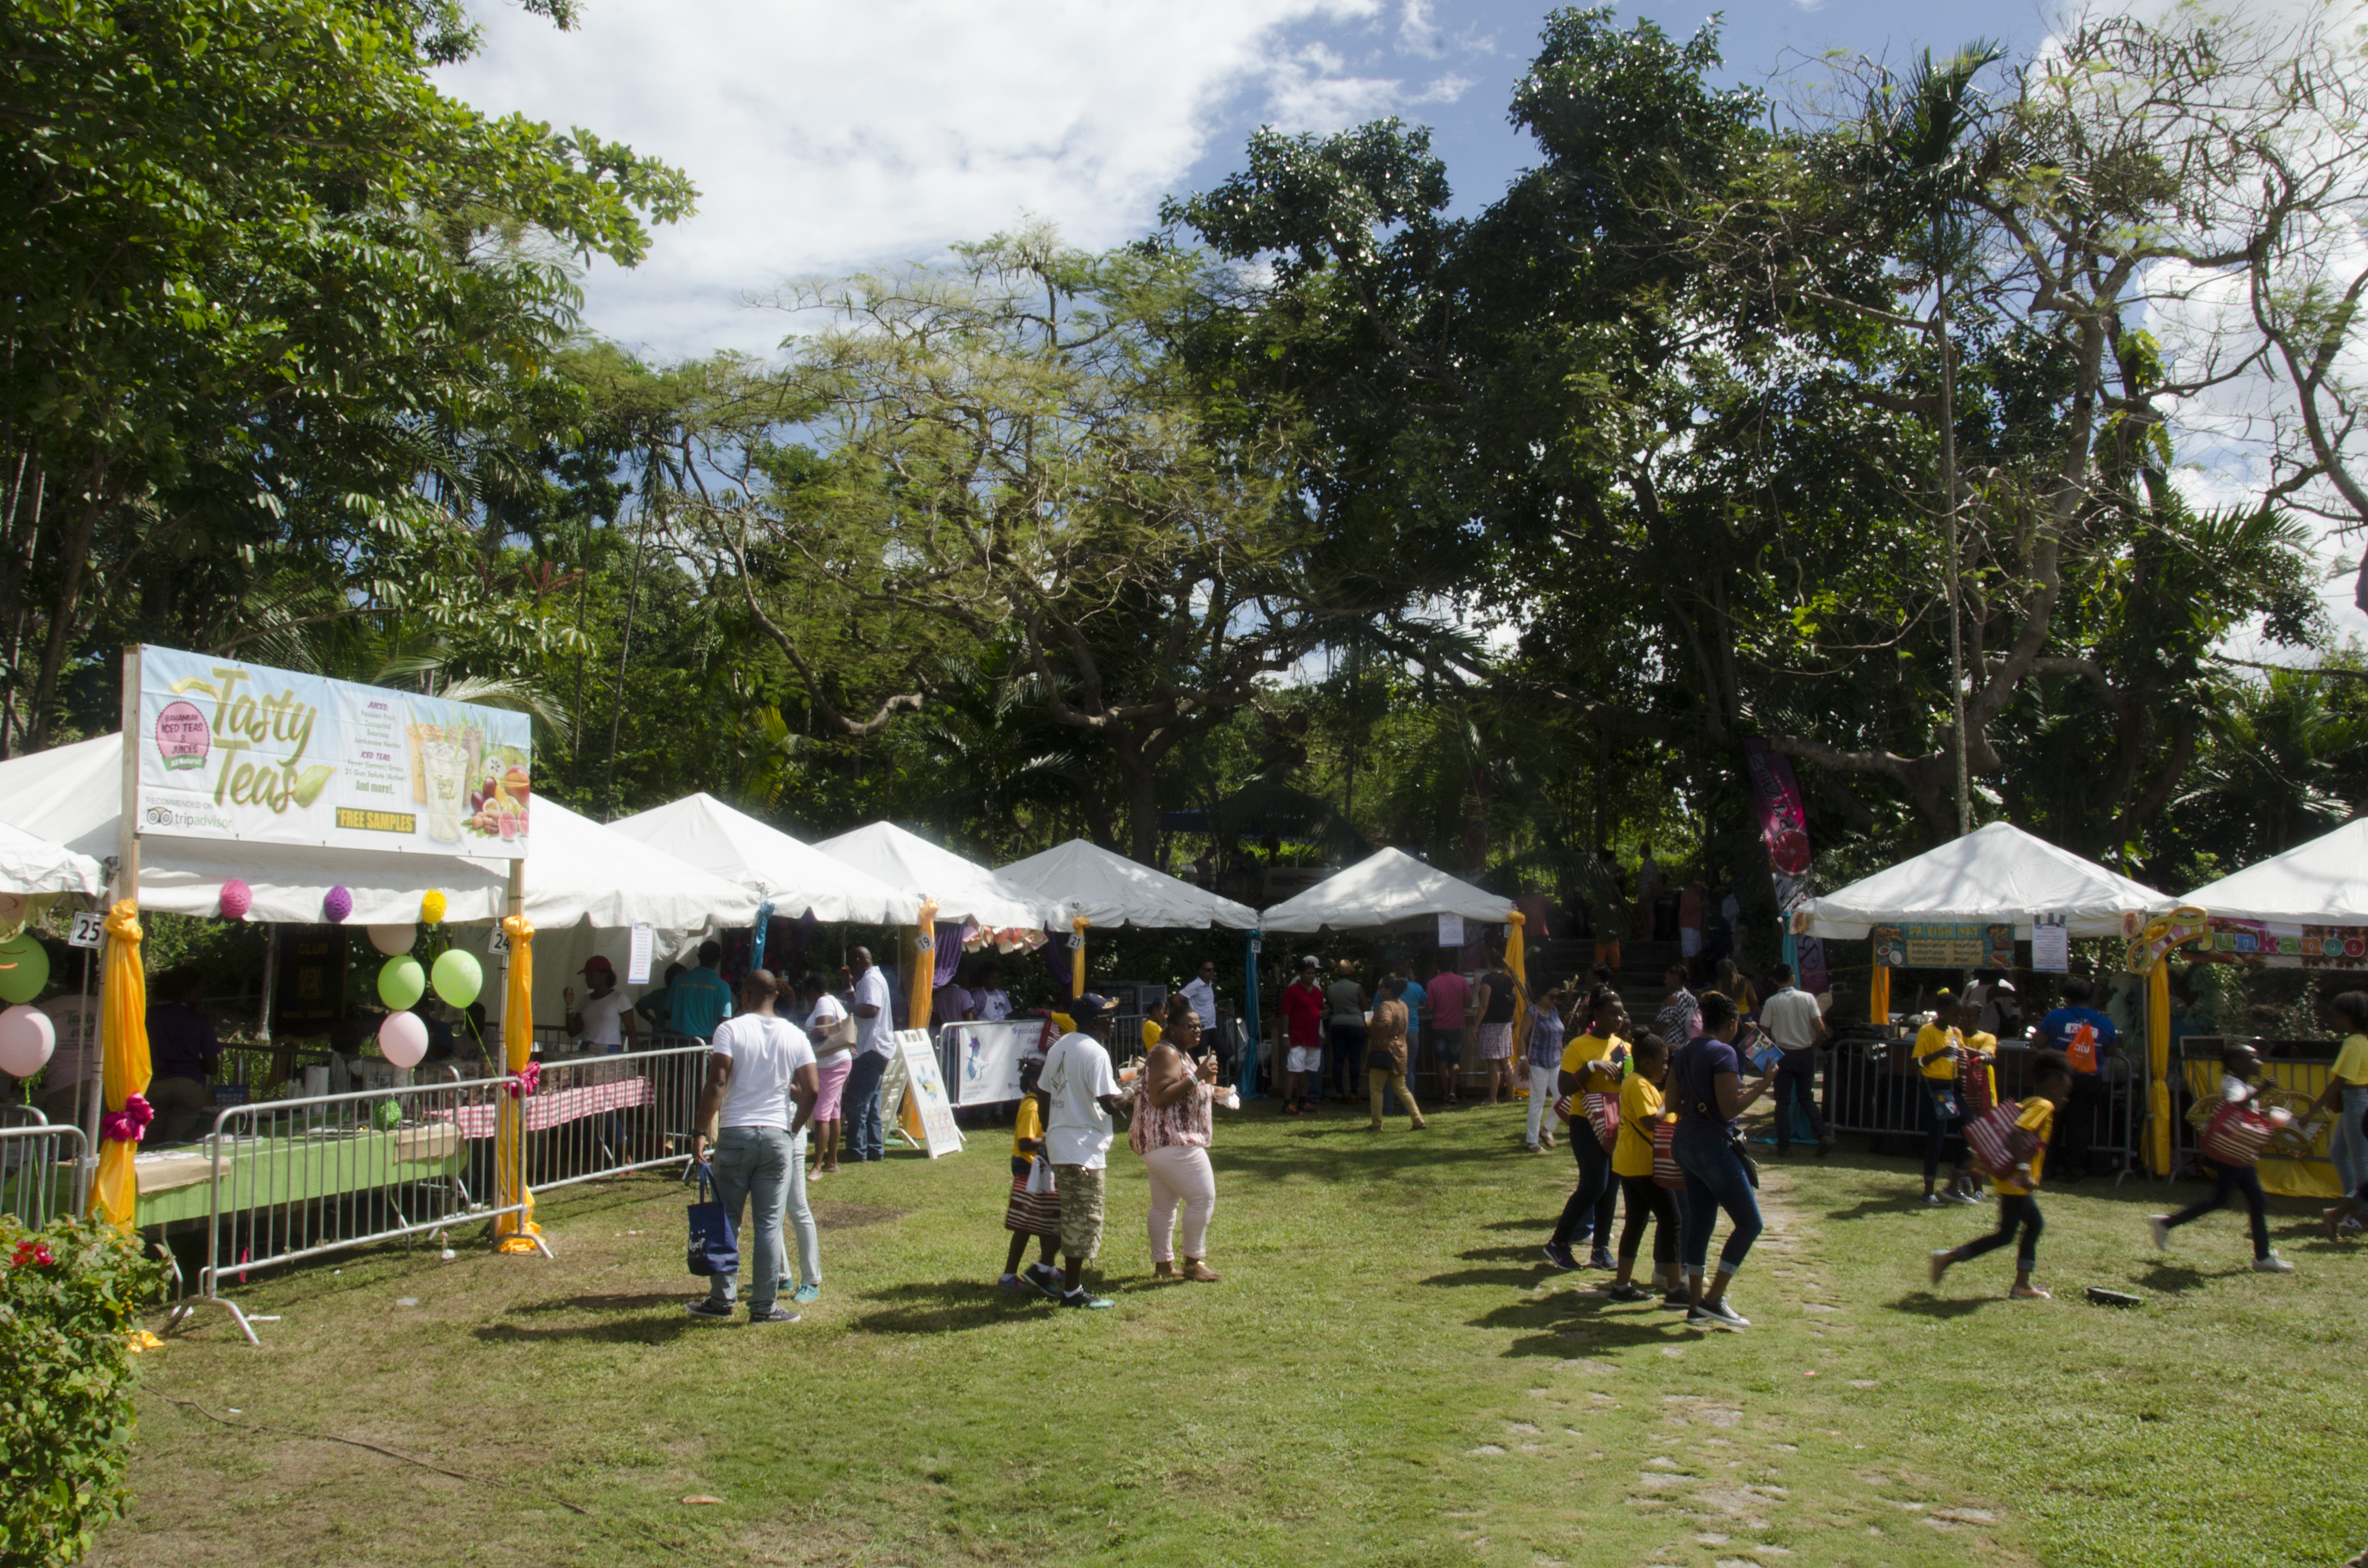 Bahamian Booths at International Cultural Festival